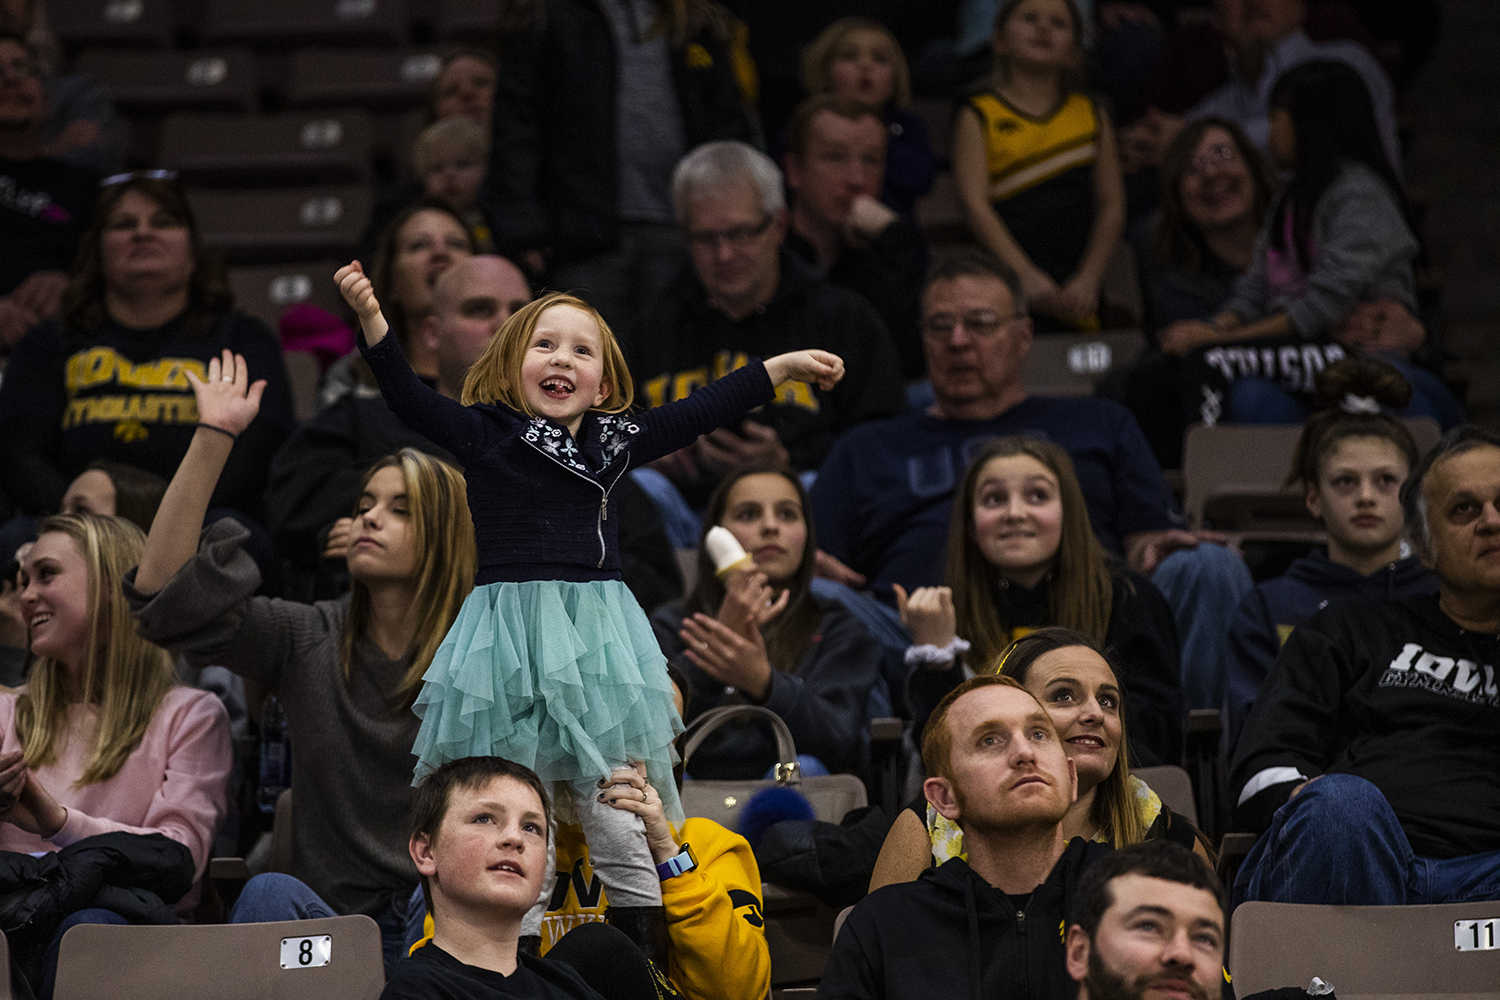 A+young+fan+dances+for+the+%22dance+cam%22+during+the+women%27s+gymnastics+meet+vs.+SEMO+at+Carver-Hawkeye+Arena+on+Friday%2C+January+11%2C+2019.+The+GymHawks+defeated+the+Redhawks+194.700-180.925.+